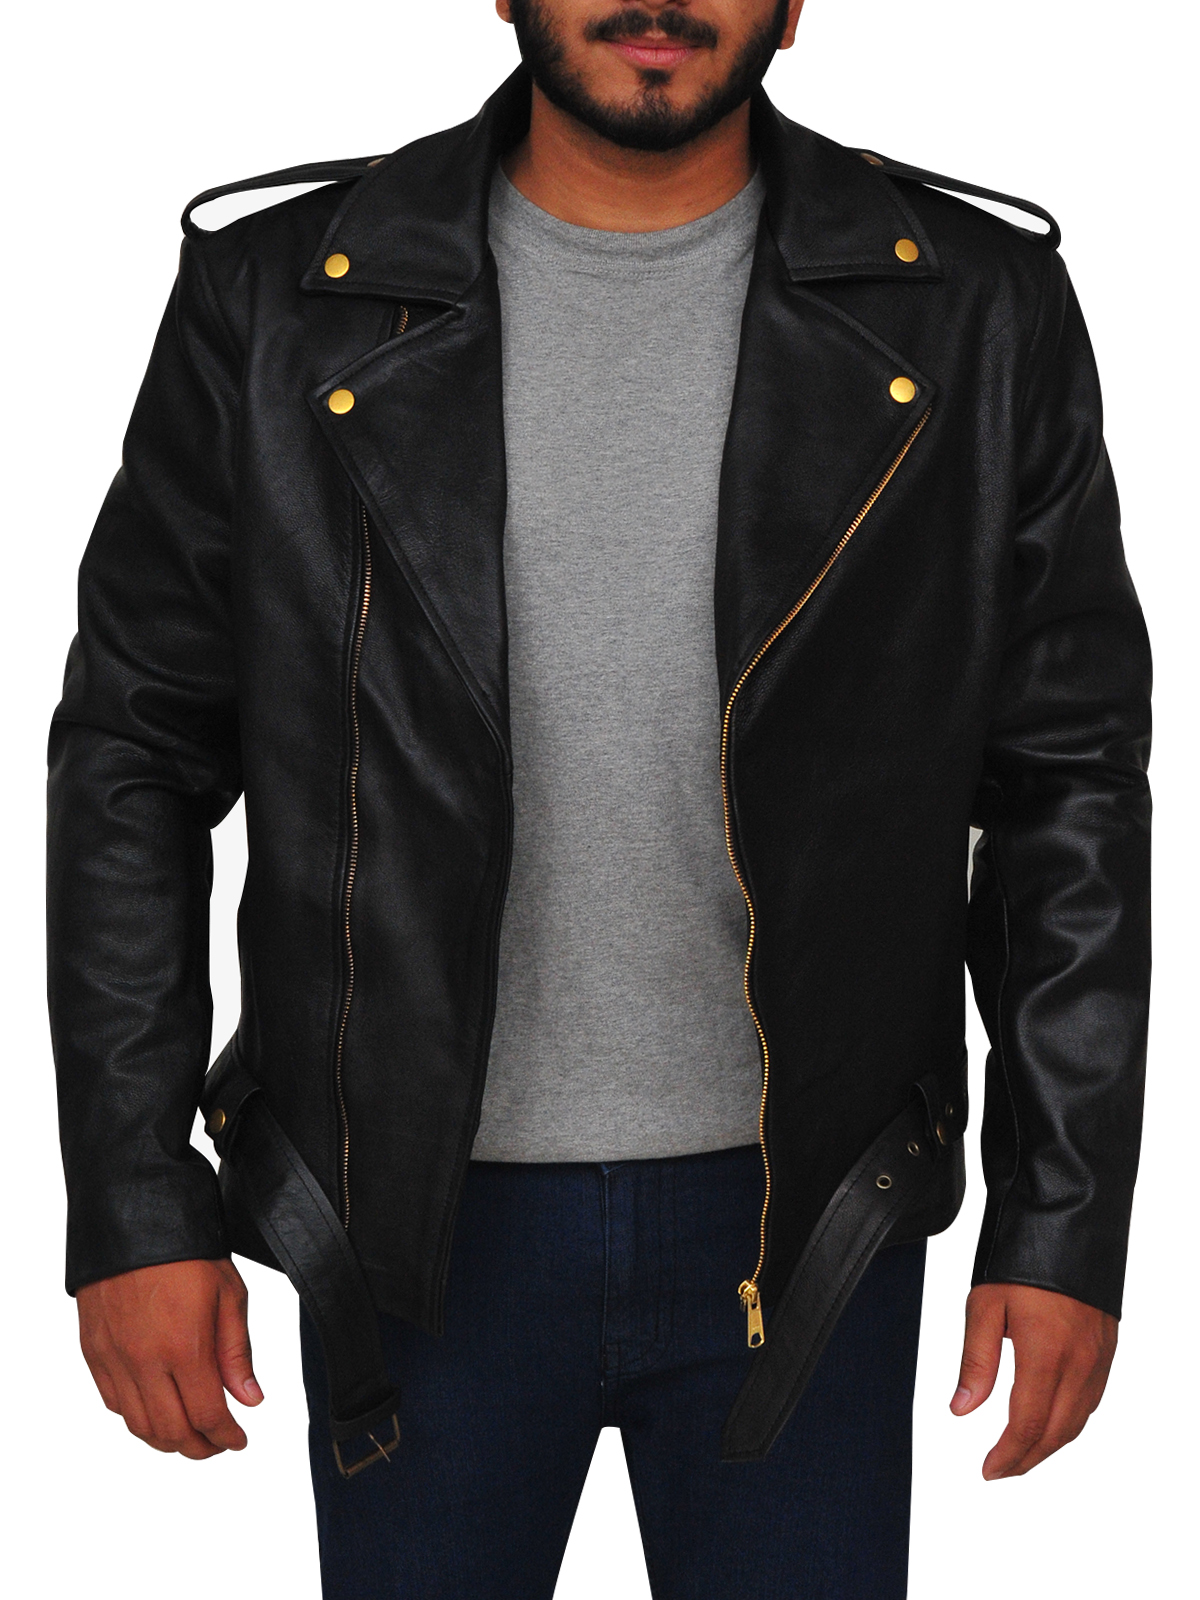 Classic Black Brando Leather Jacket With Golden Bottons | MauveTree |